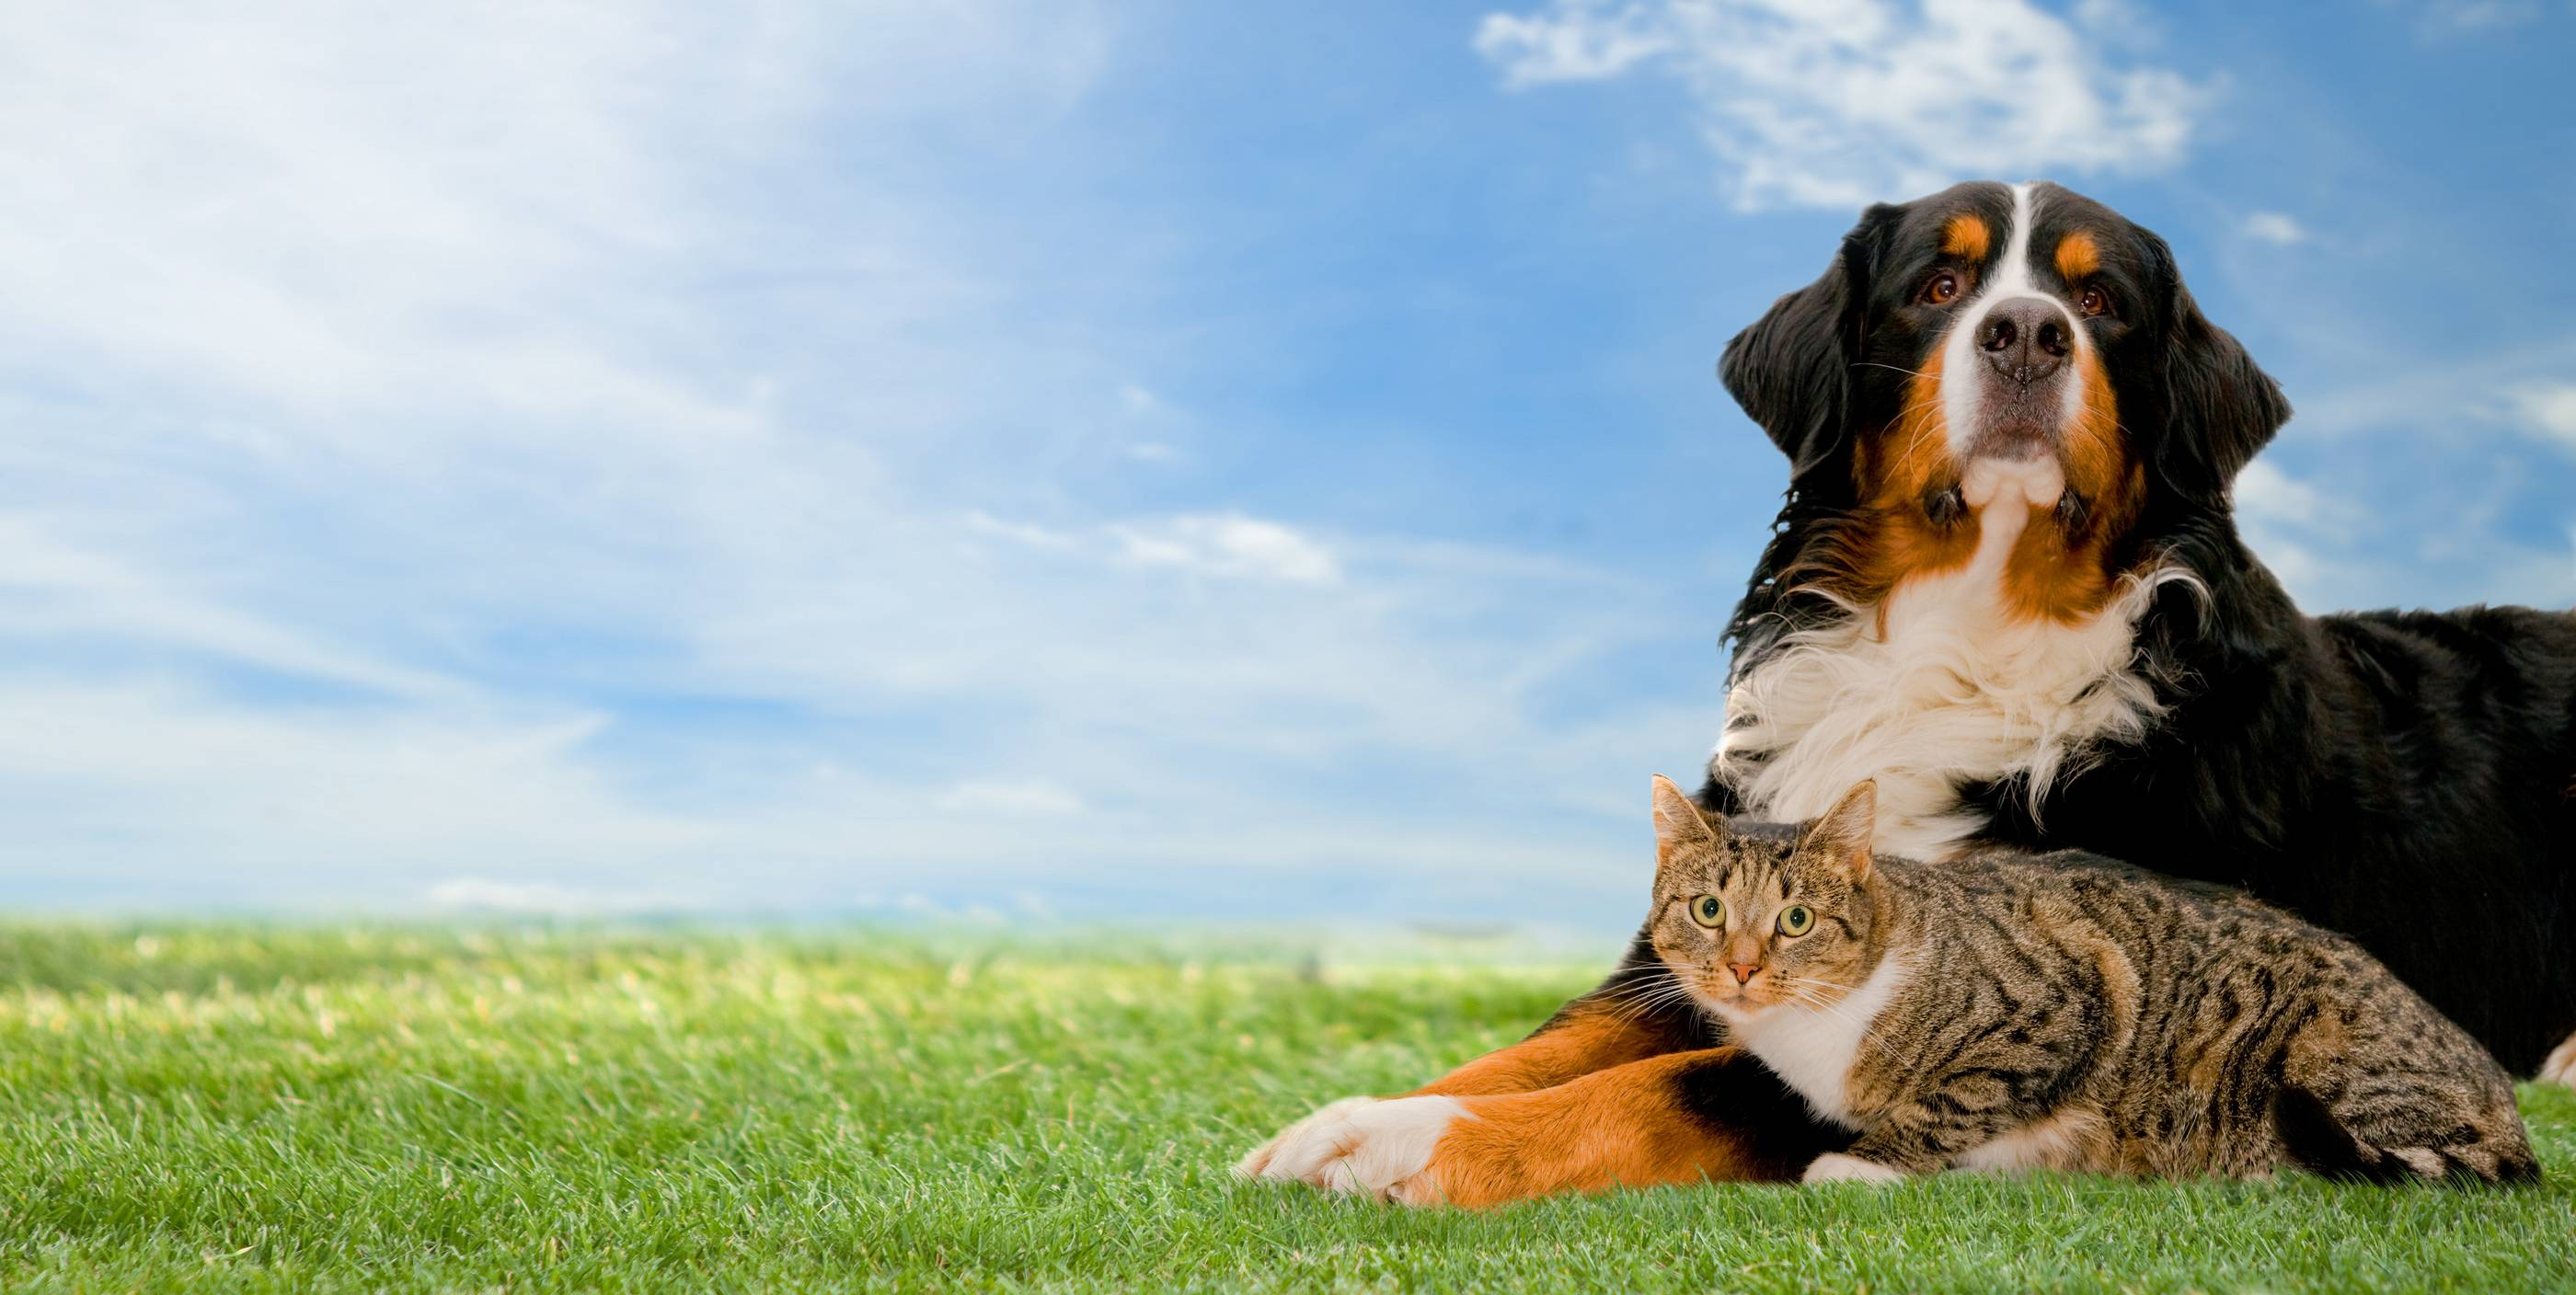 Cats And Dogs Wallpapers 2800x1408